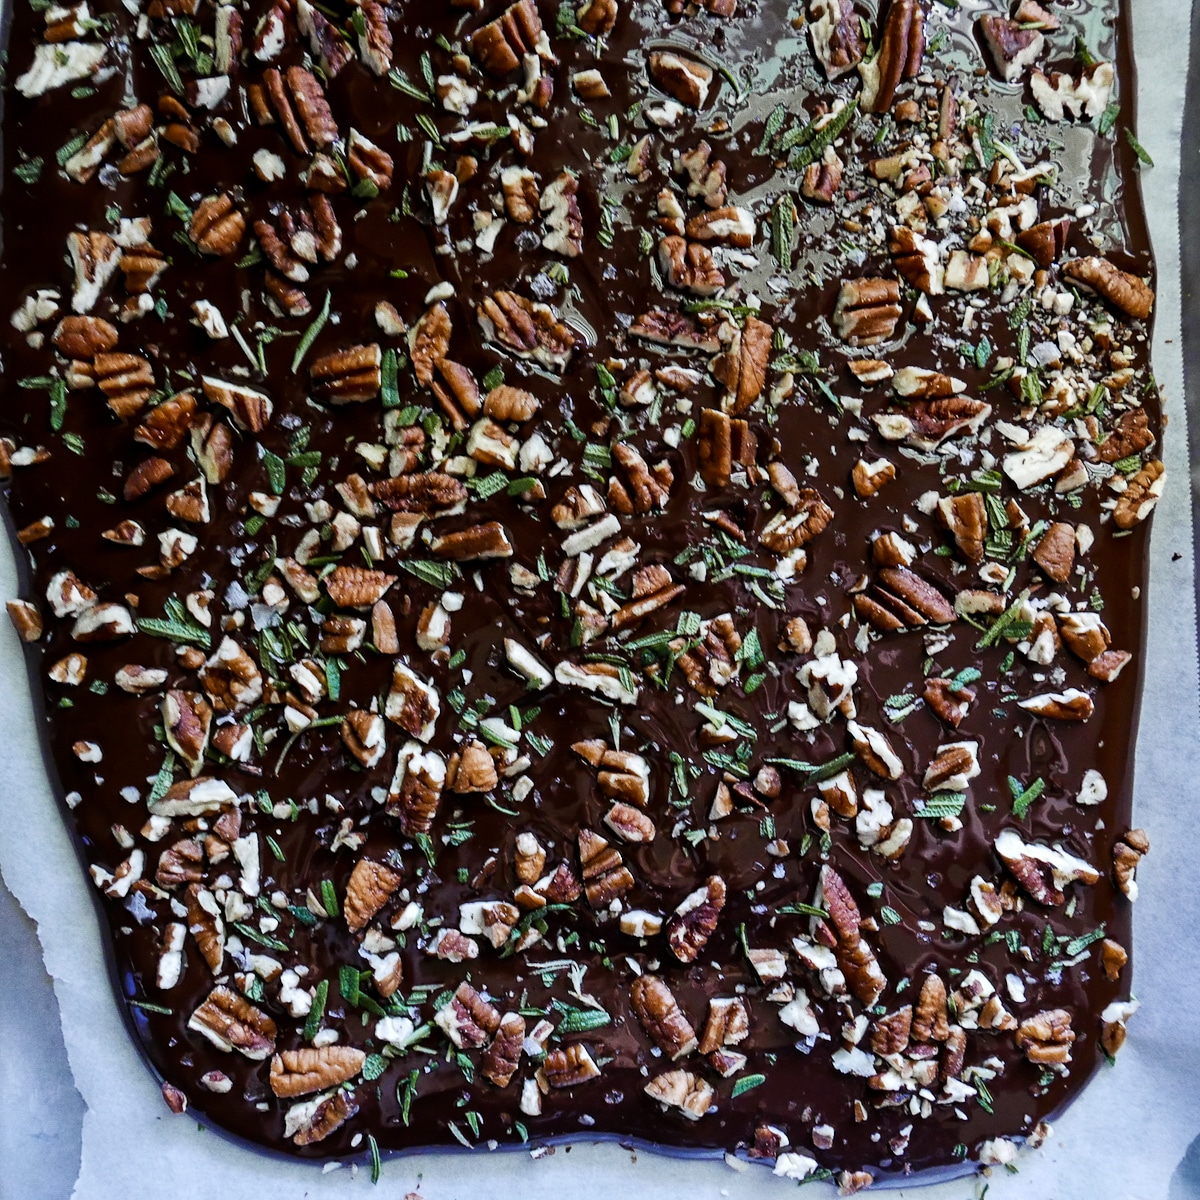 chocolate topped with pecans and rosemary on a baking sheet